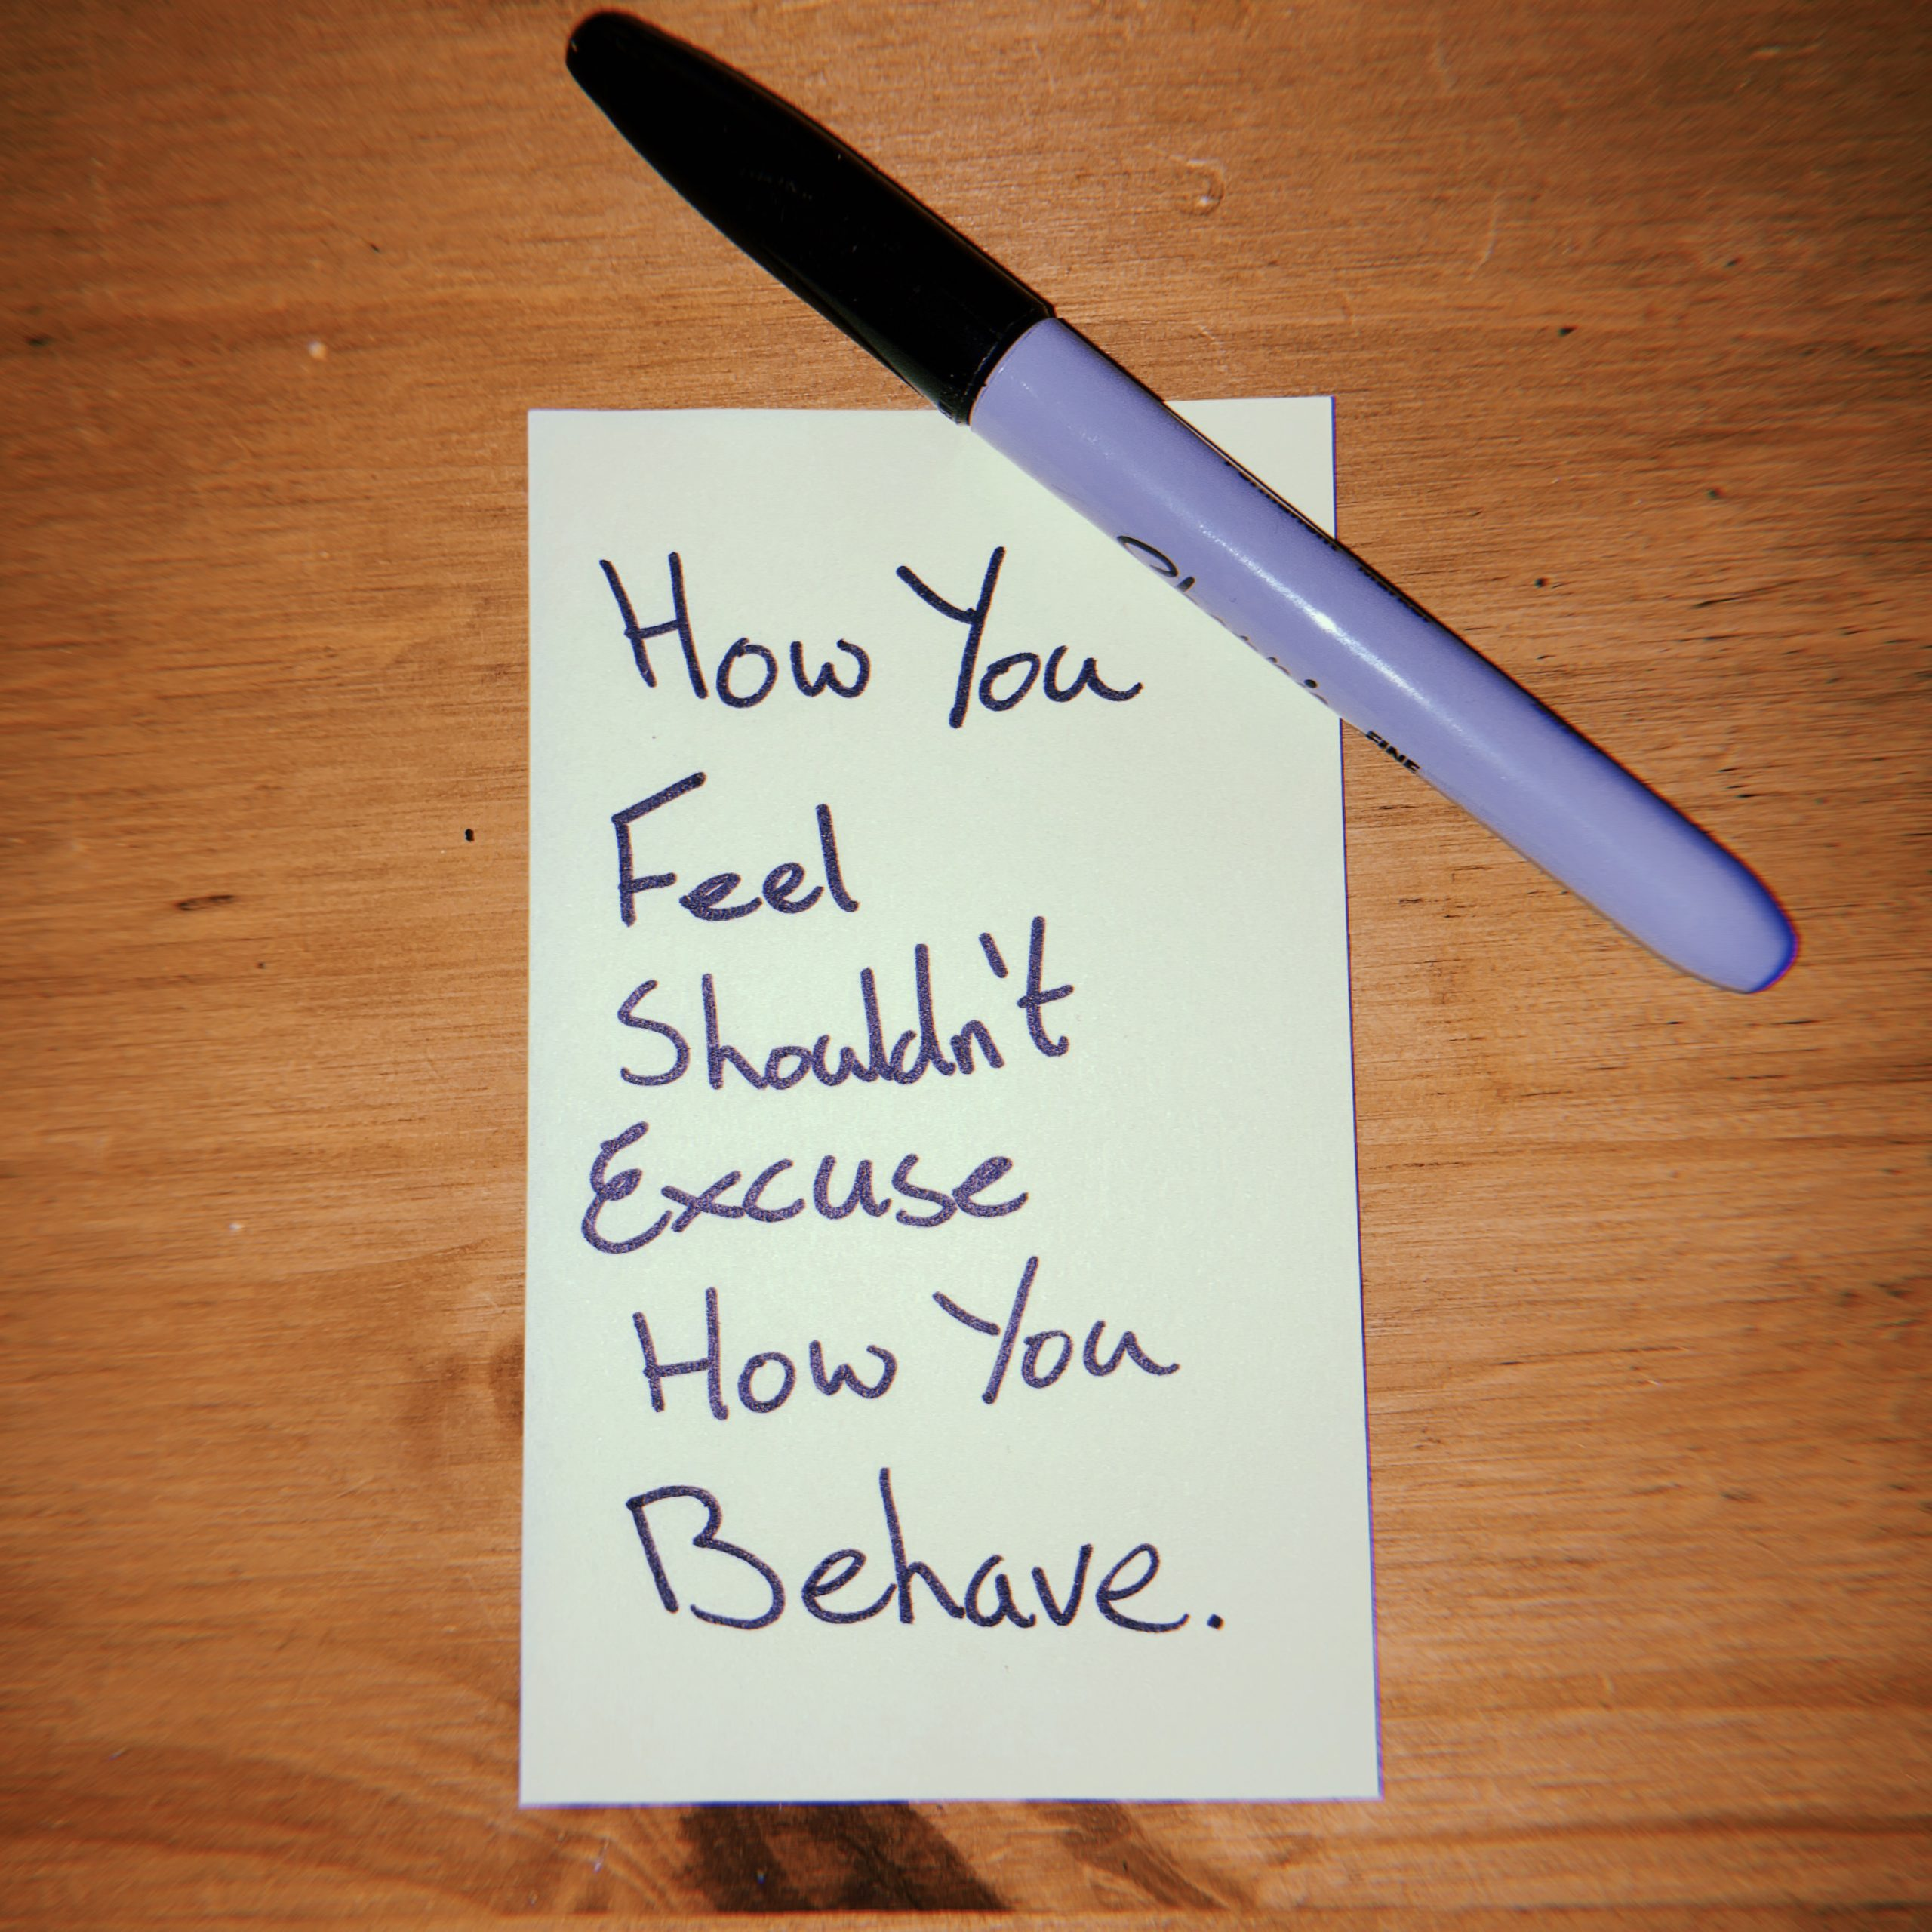 How You Feel Shouldn't Excuse How You Behave